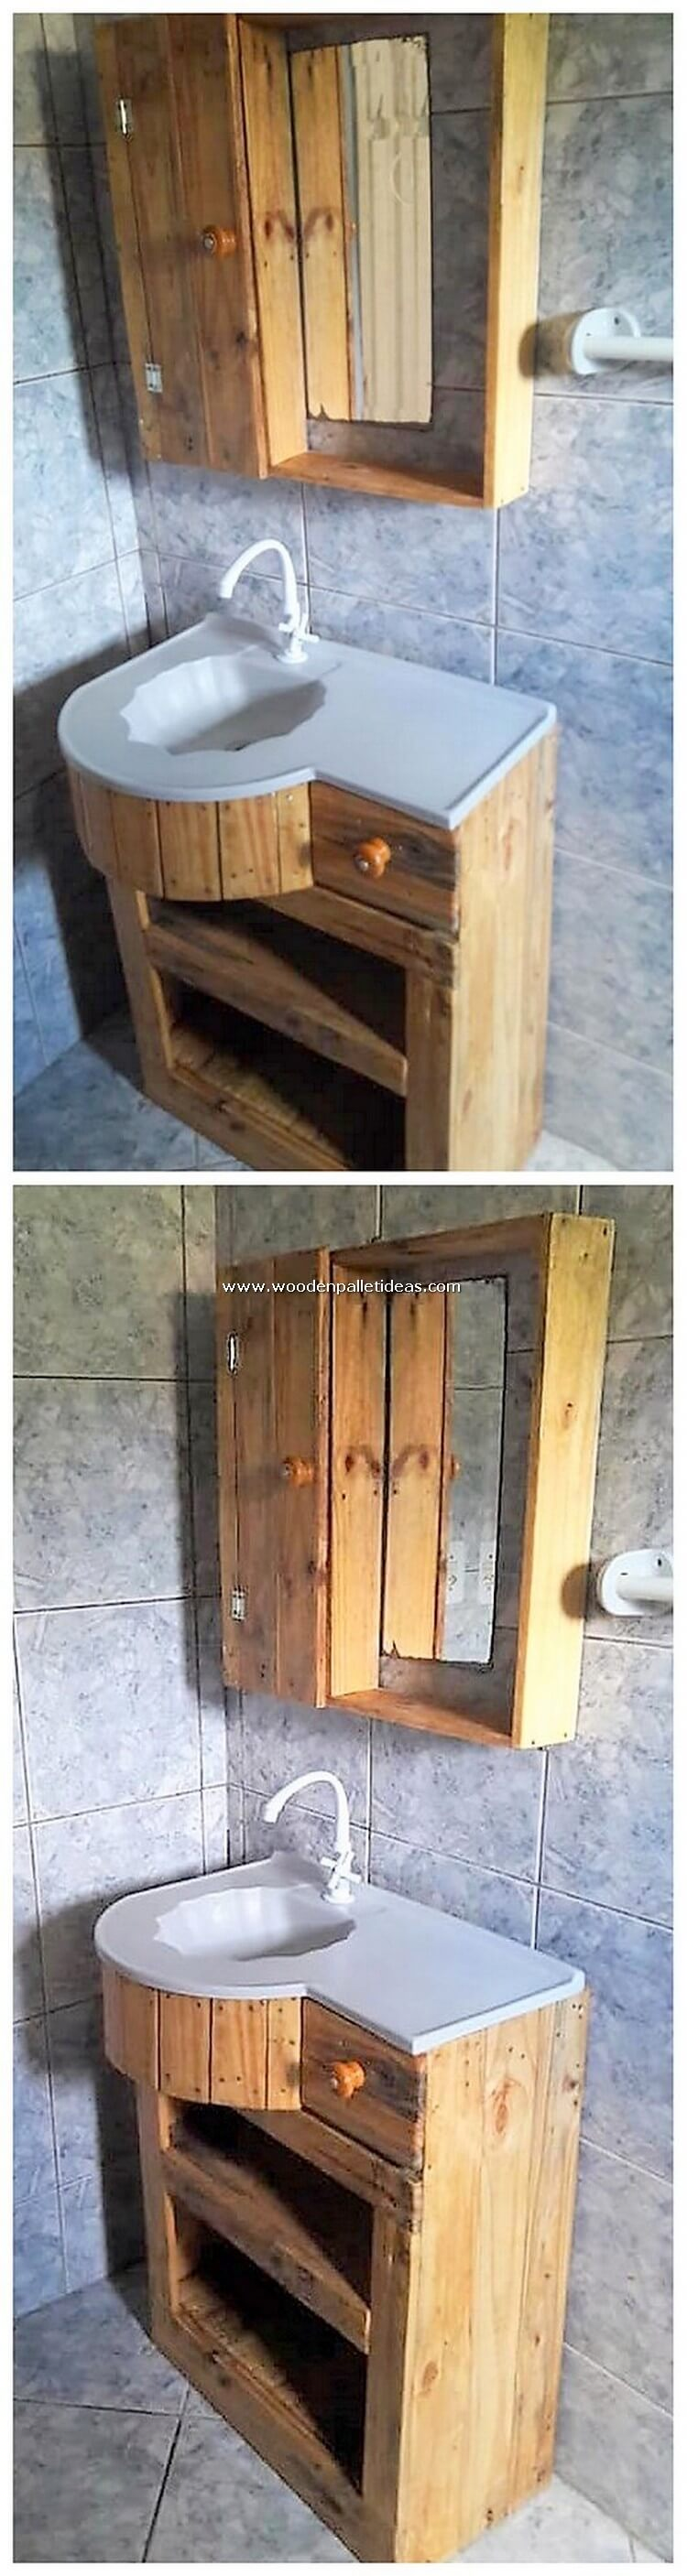 Pallet-Bathroom-Sink-and-Cabinet